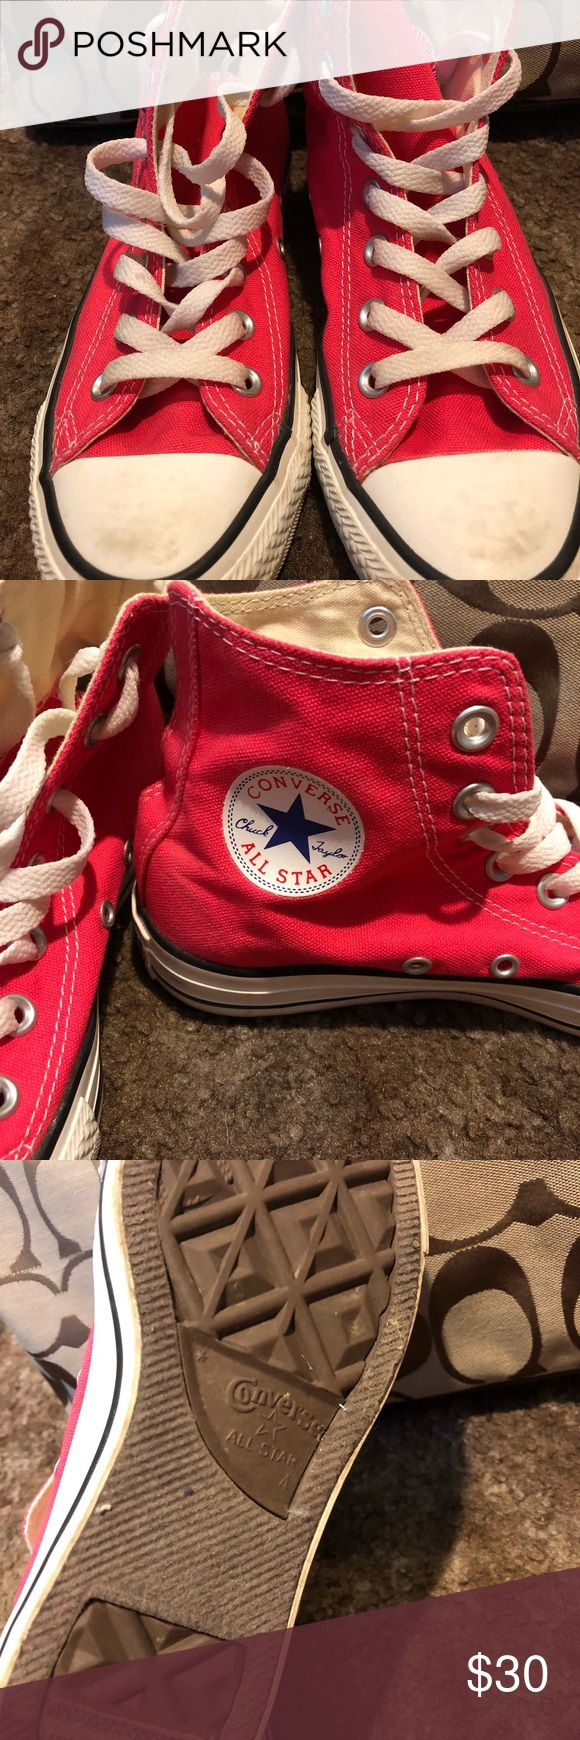 Hot Pink High Top Converse Good condition, only worn a handful of times. Some scuffing on toes as seen in pictures. Otherwise no other known stains. Insides are good also as shown. Bottoms intact too! Converse Shoes Sneakers